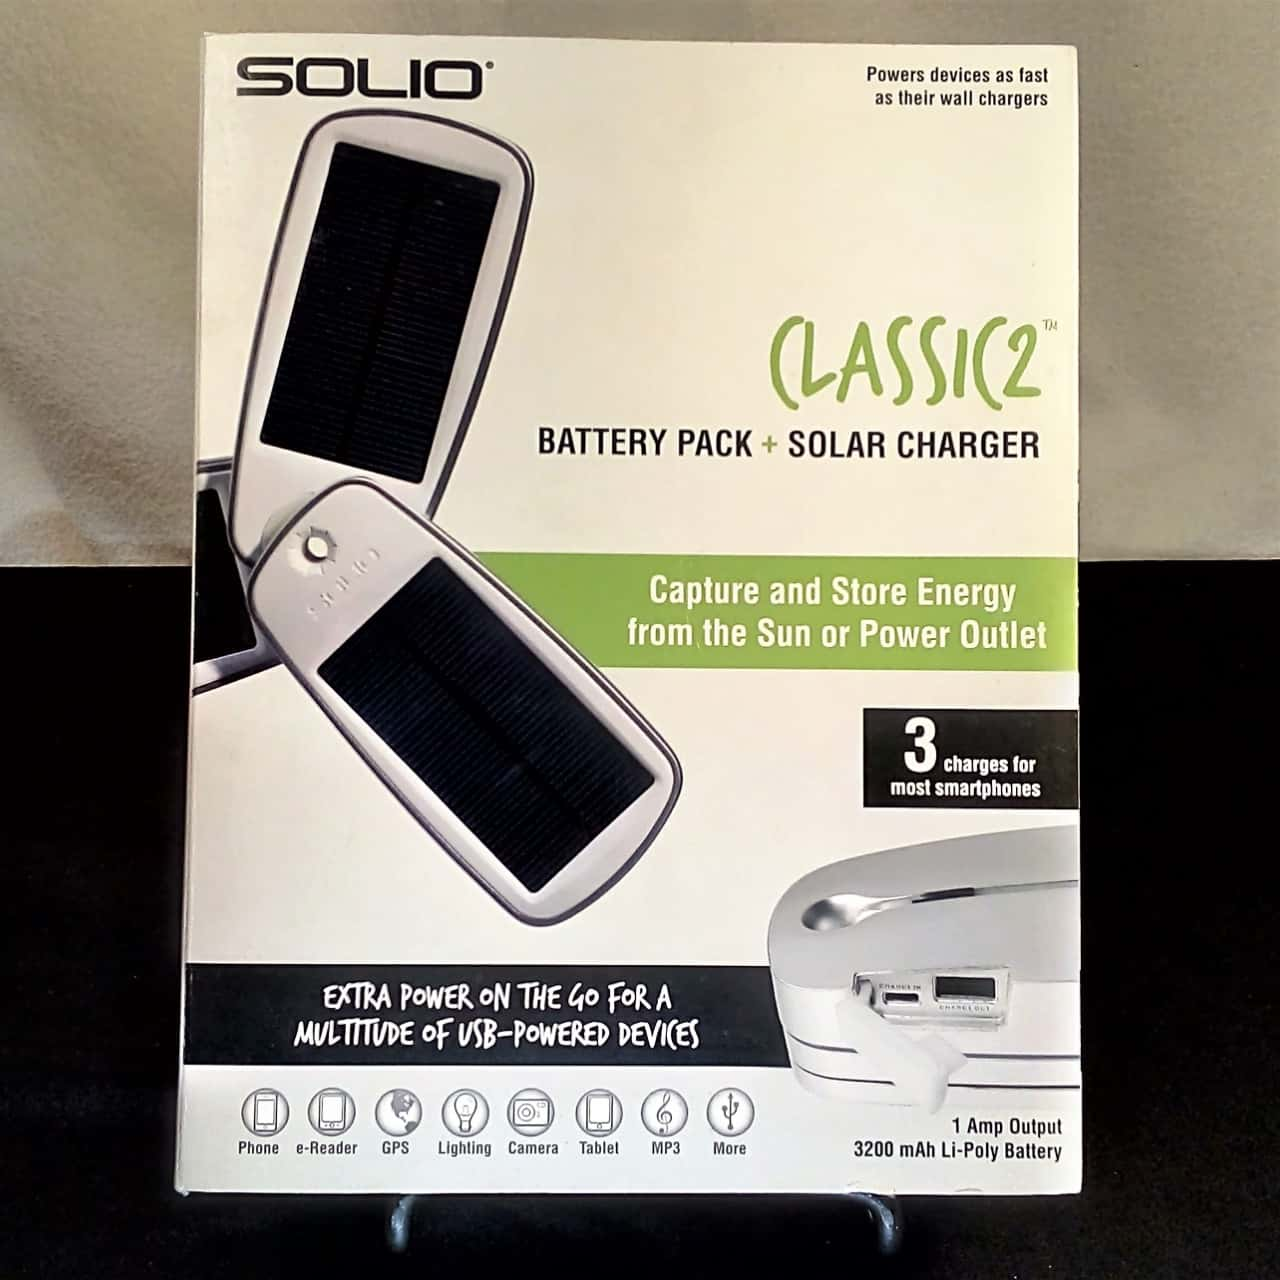 SOLIO Classic 2 Battery Pack and Solar Charger